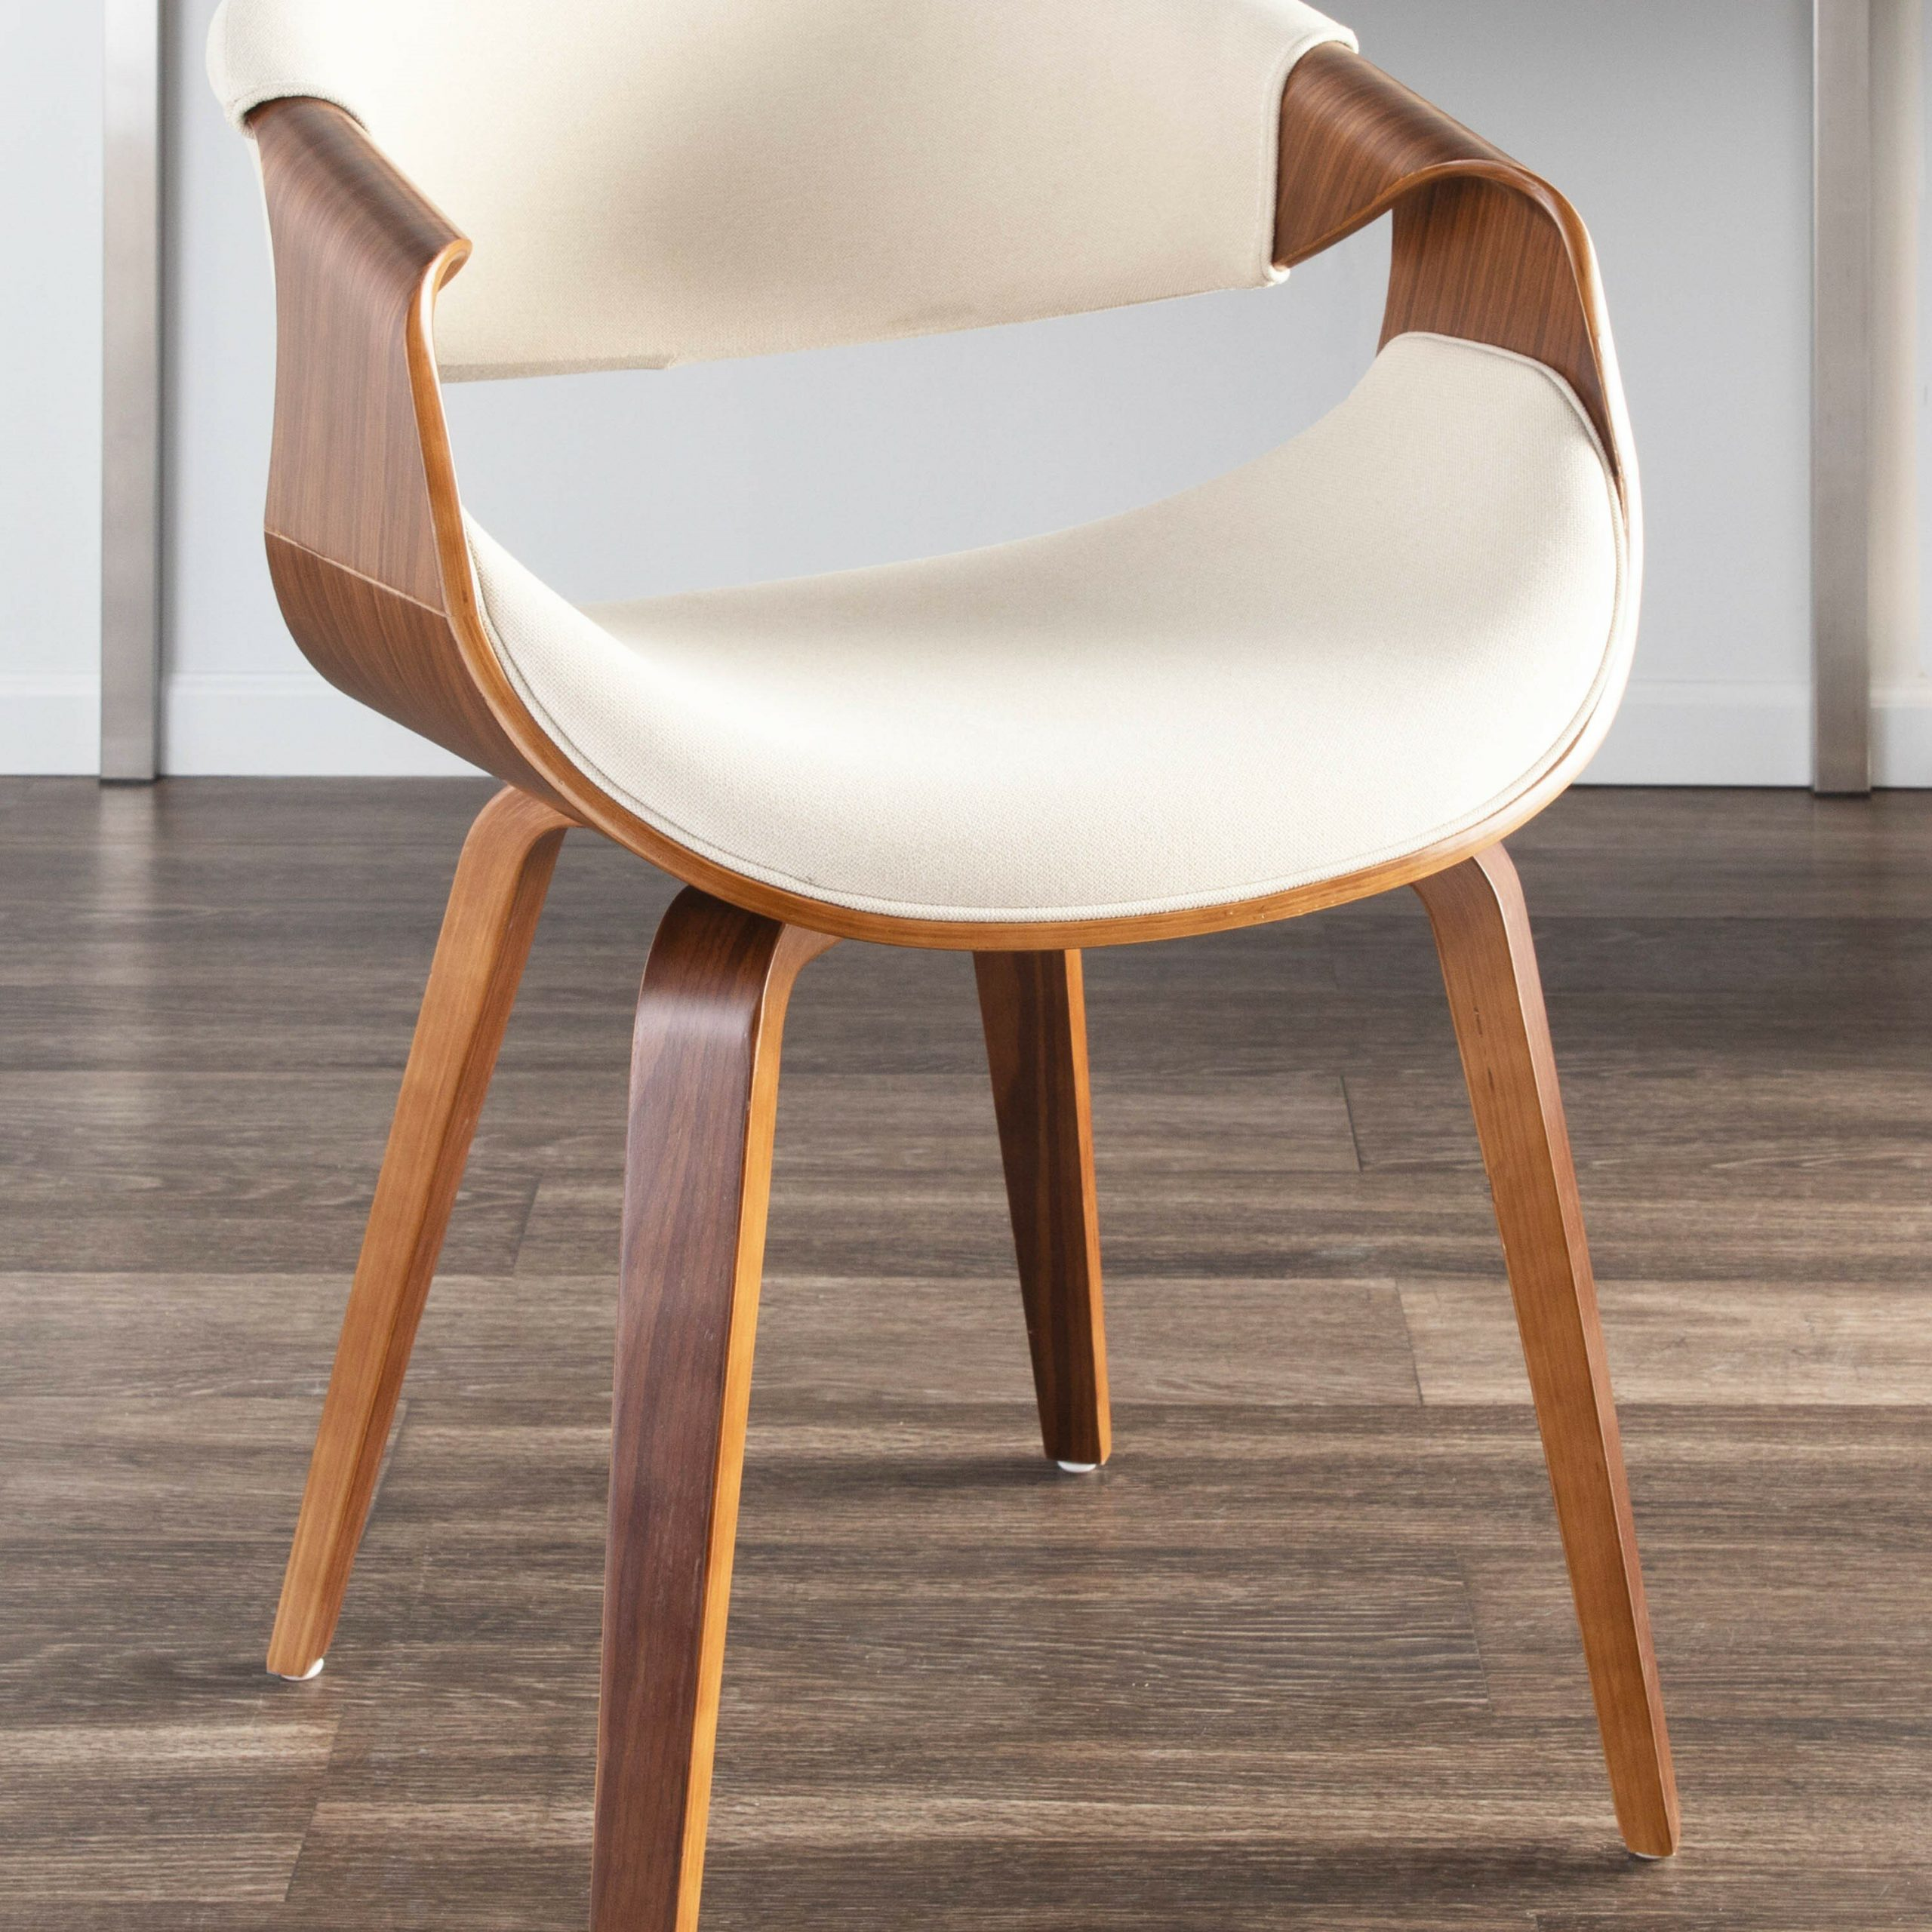 Auburn Upholstered Arm Chair & Reviews | Allmodern Intended For Liston Faux Leather Barrel Chairs (View 9 of 15)